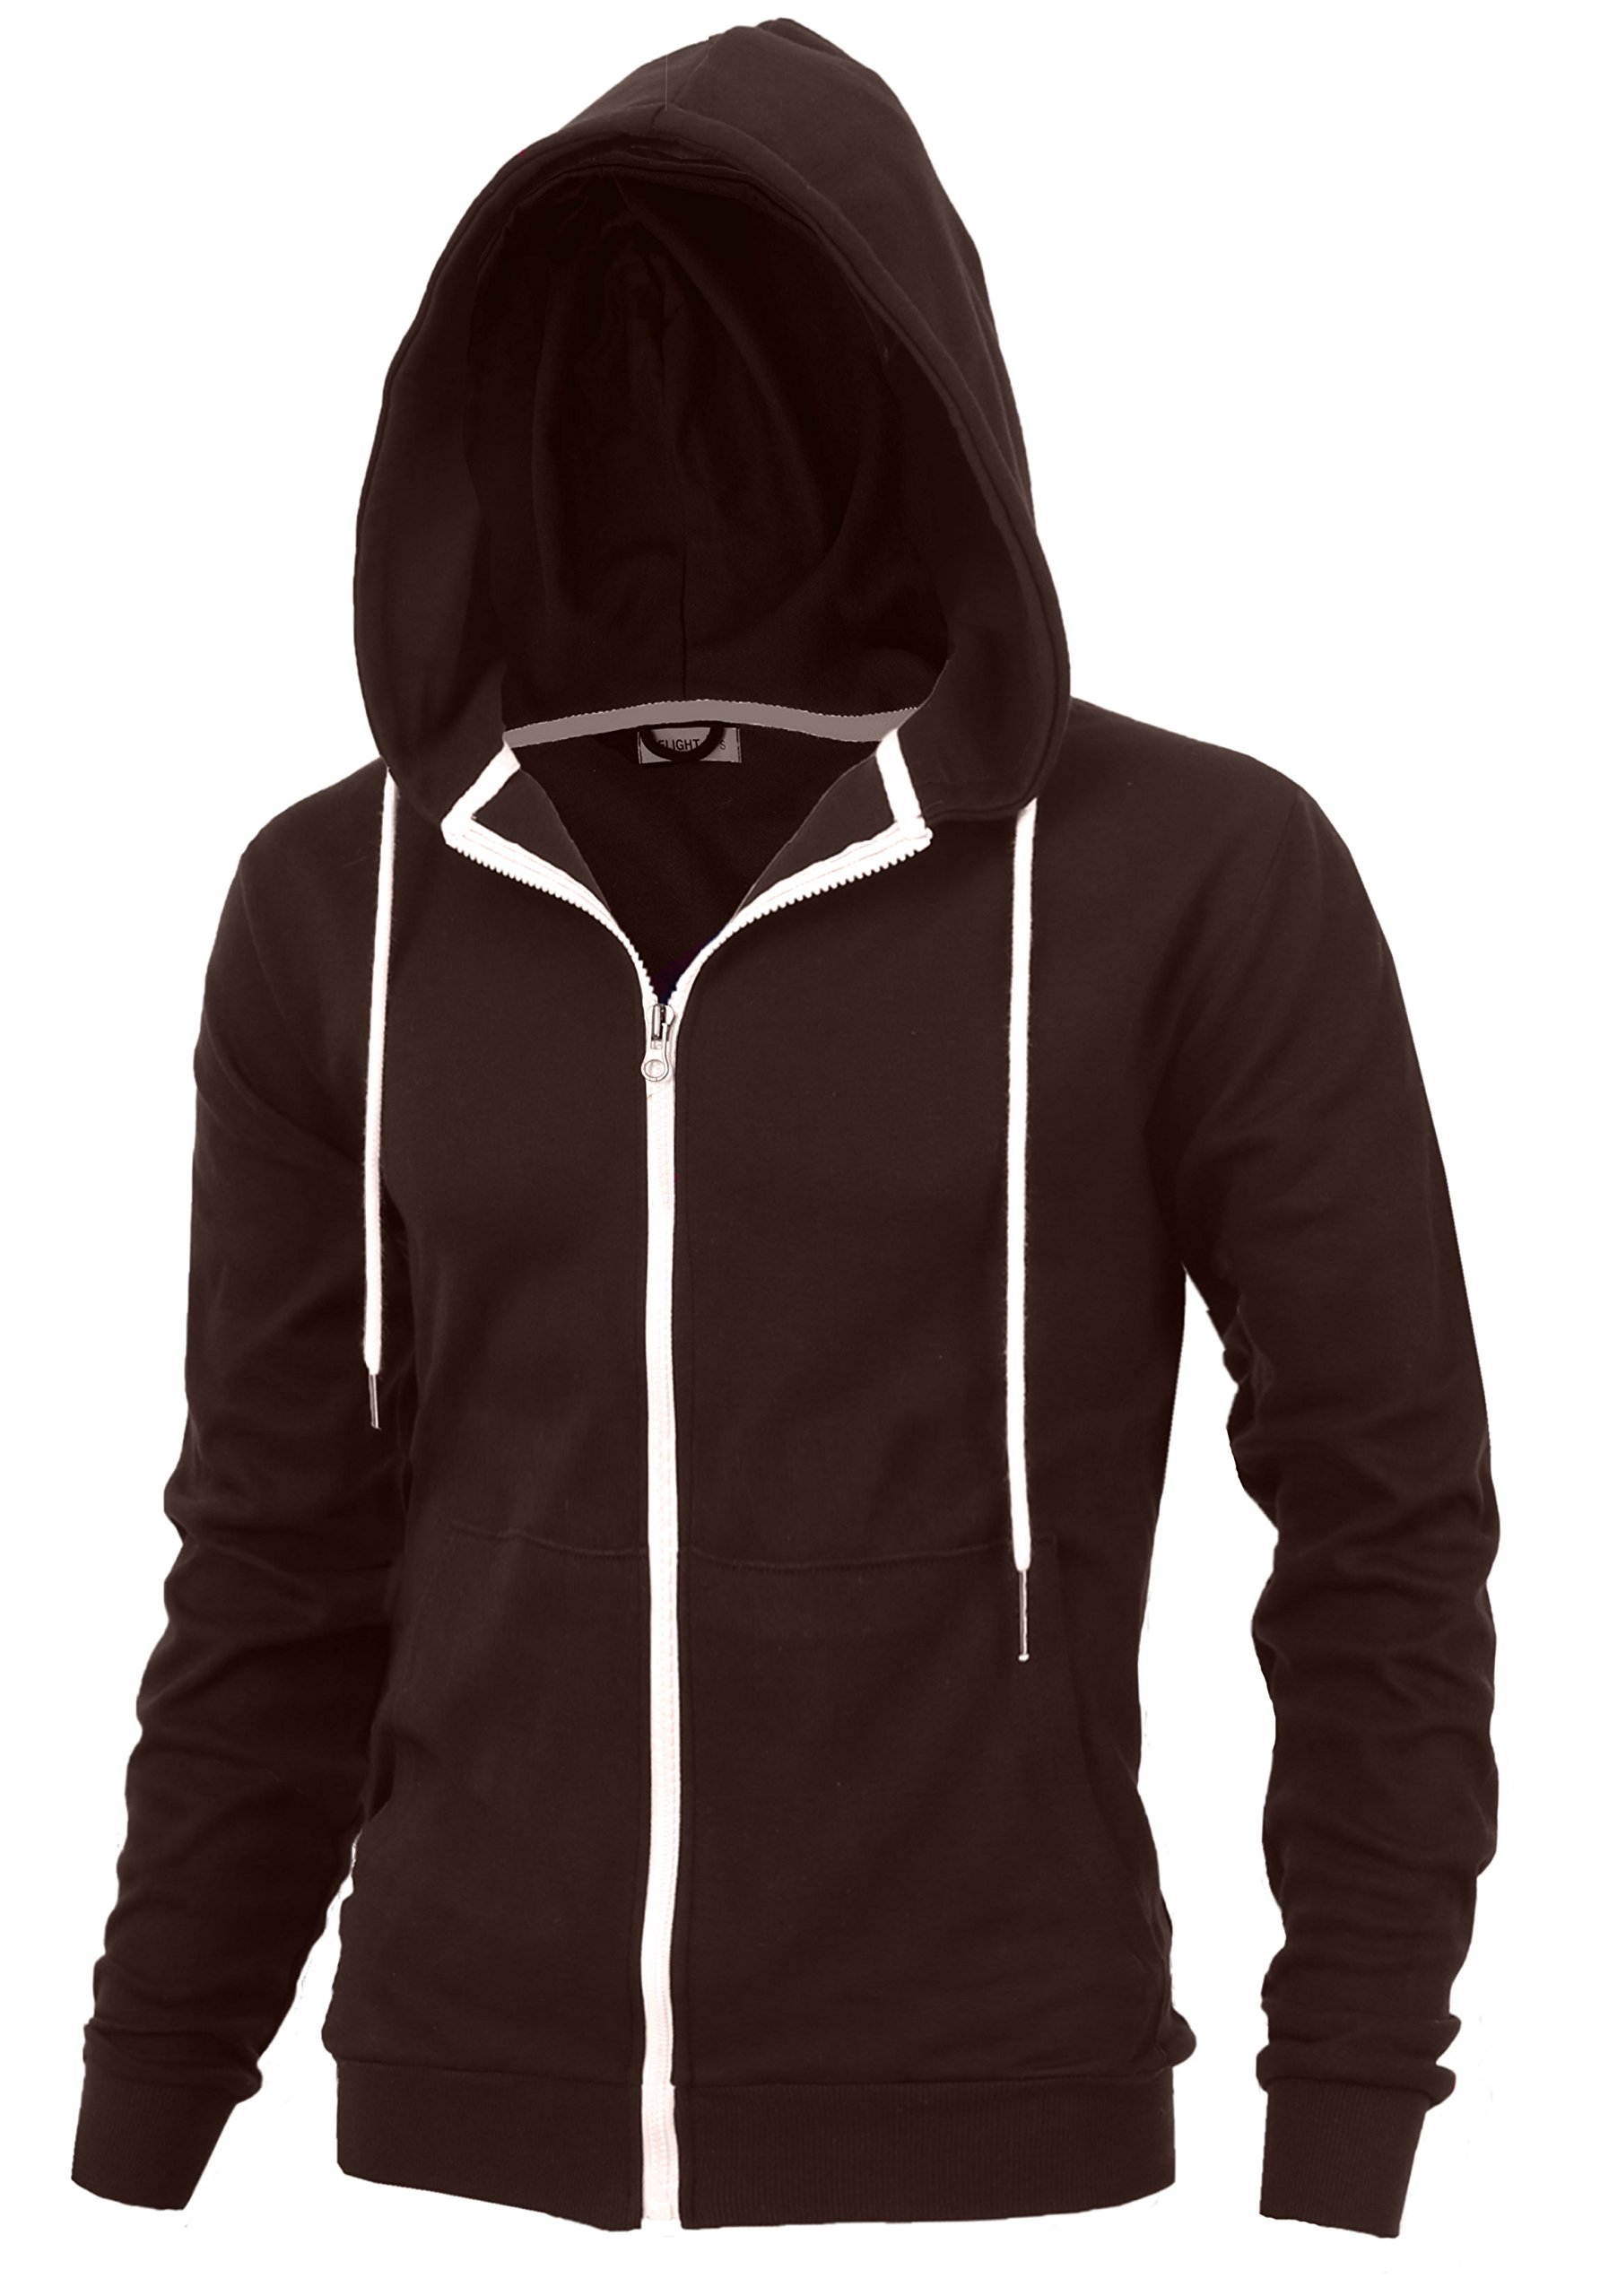 "DELight"" Men's Fashion Fit Full-Zip Hoodie with"